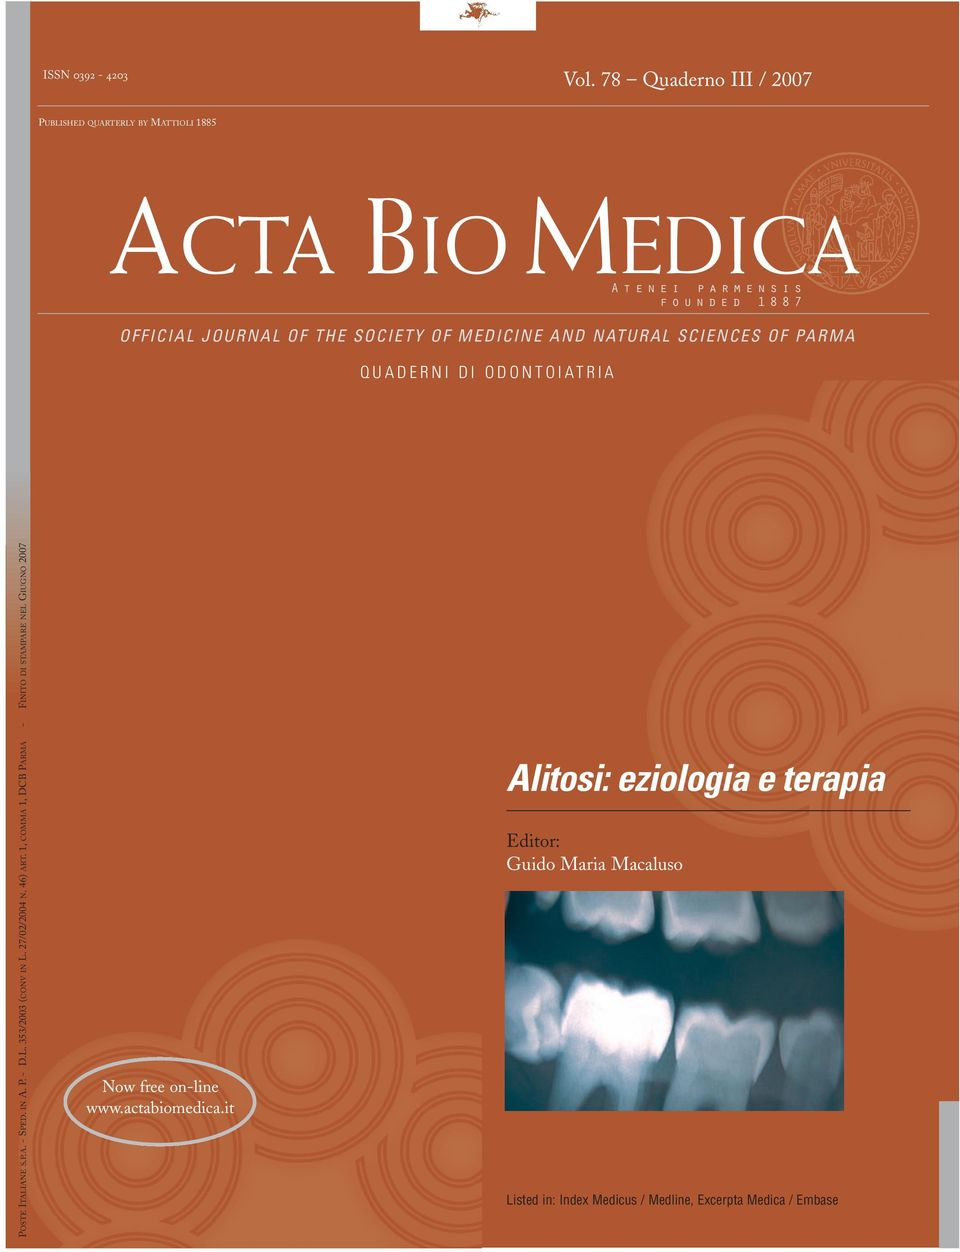 SOCIETY OF MEDICINE AND NATURAL SCIENCES OF PARMA QUADERNI DI ODONTOIATRIA POSTE ITALIANE S.P.A. - SPED. IN A. P. - D.L. 353/2003 (CONV IN L.